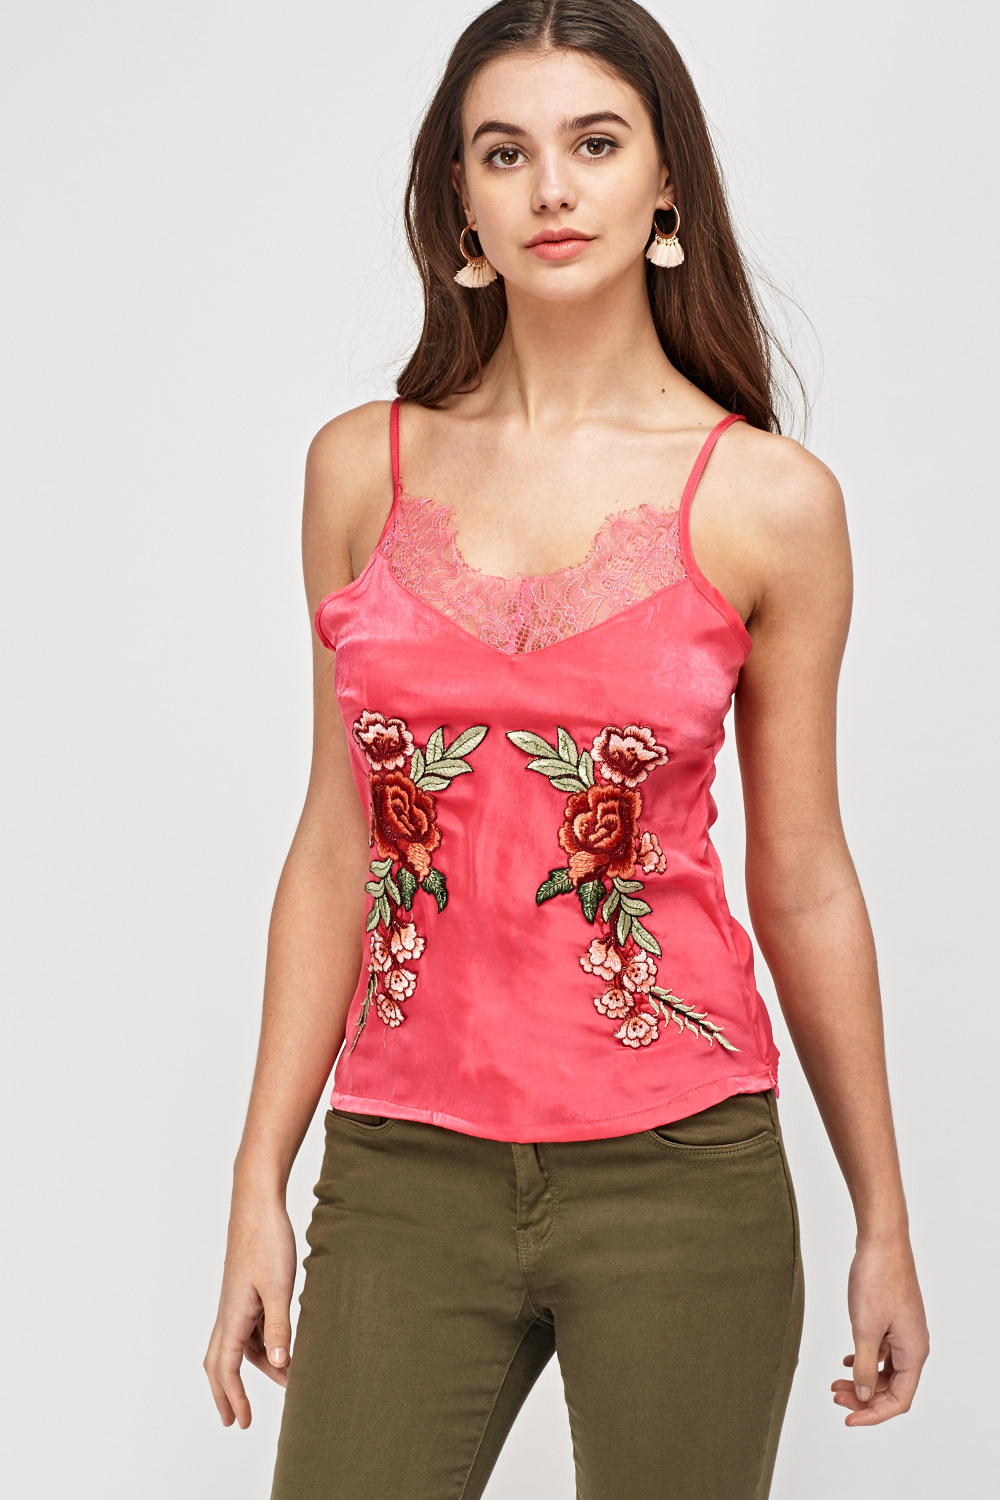 fbbb309d44ba Embroidered Lace Trim Sateen Cami Top - Just £5